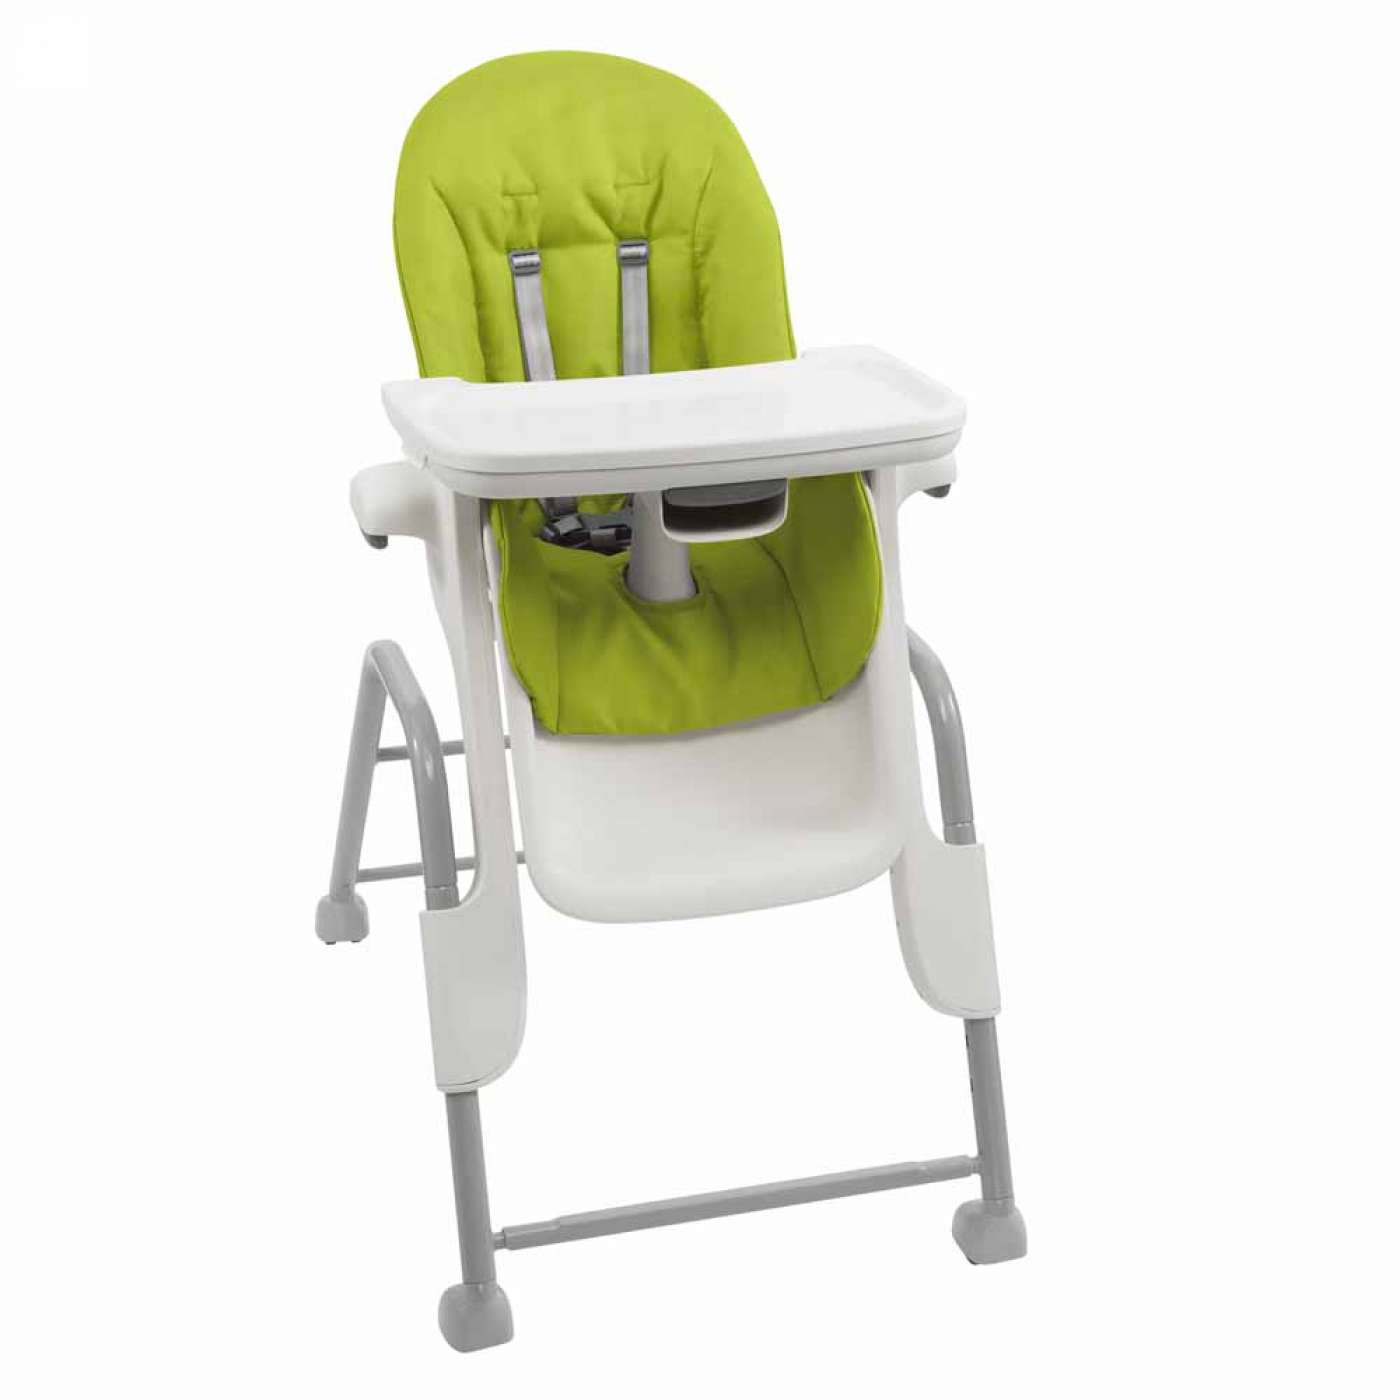 OXO Tot Seedling High Chair Malaysia The Baby oft